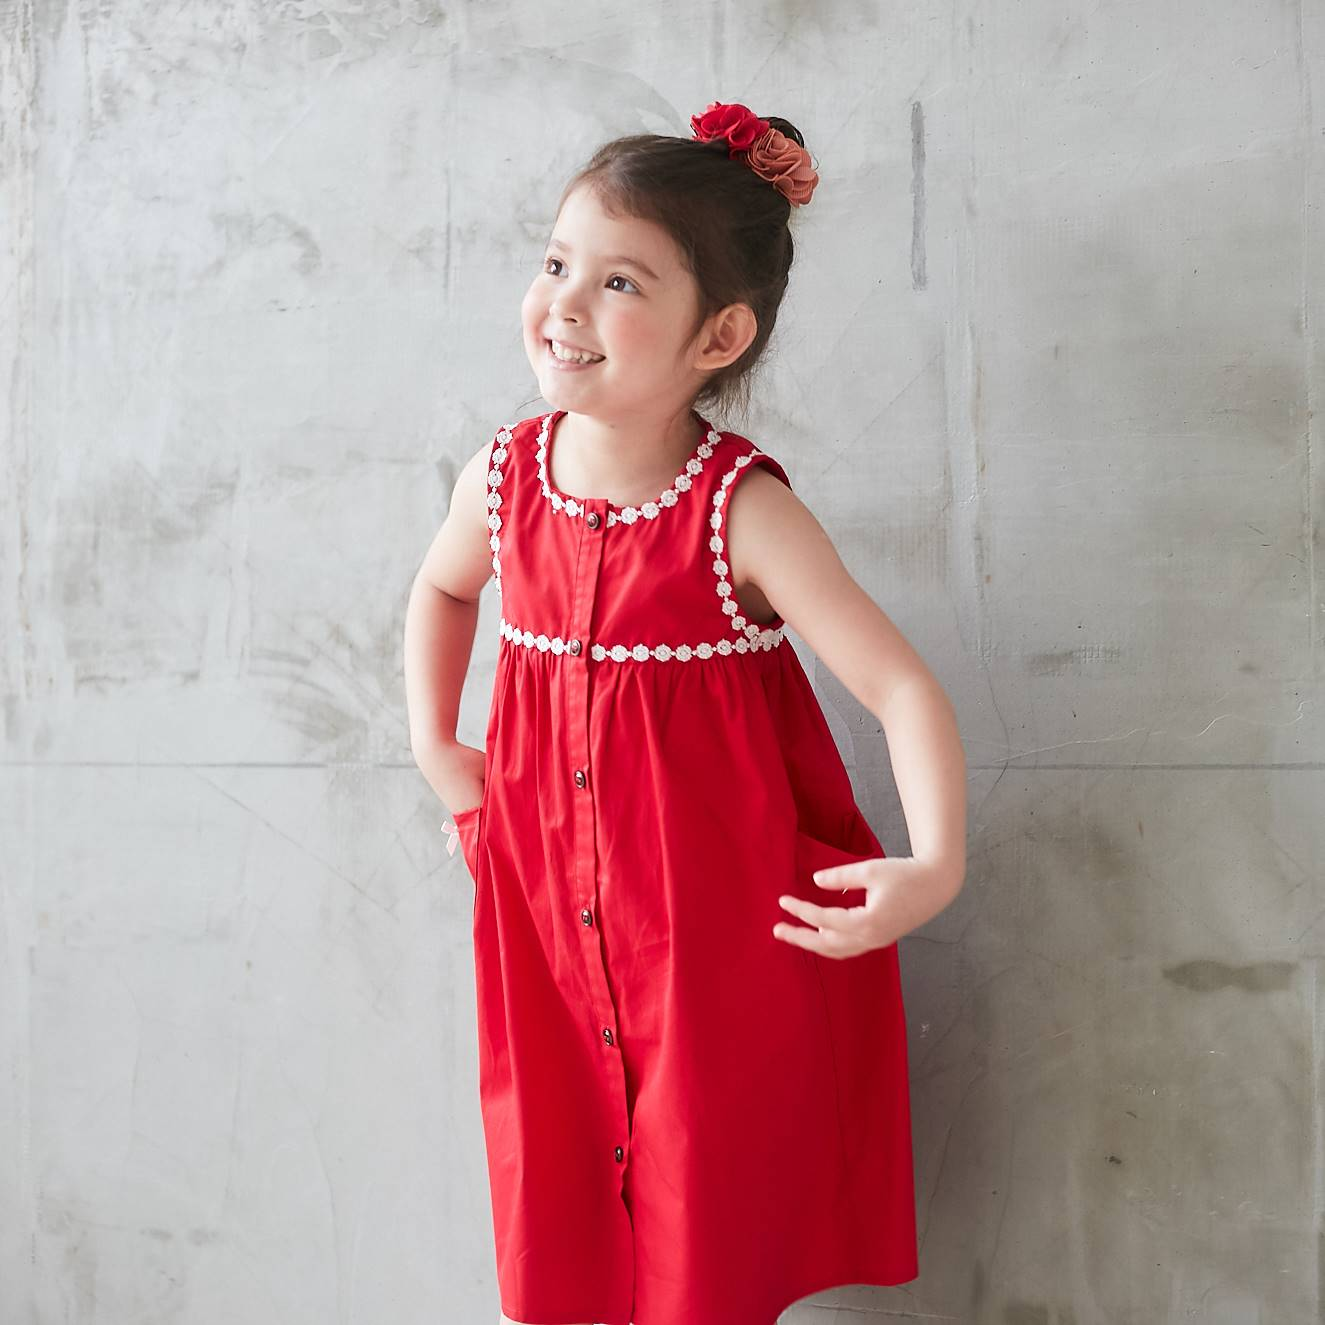 Red Lace-Trim Button-Front Sleeveless Dress - Bunny n Bloom Mommy & Me Dress